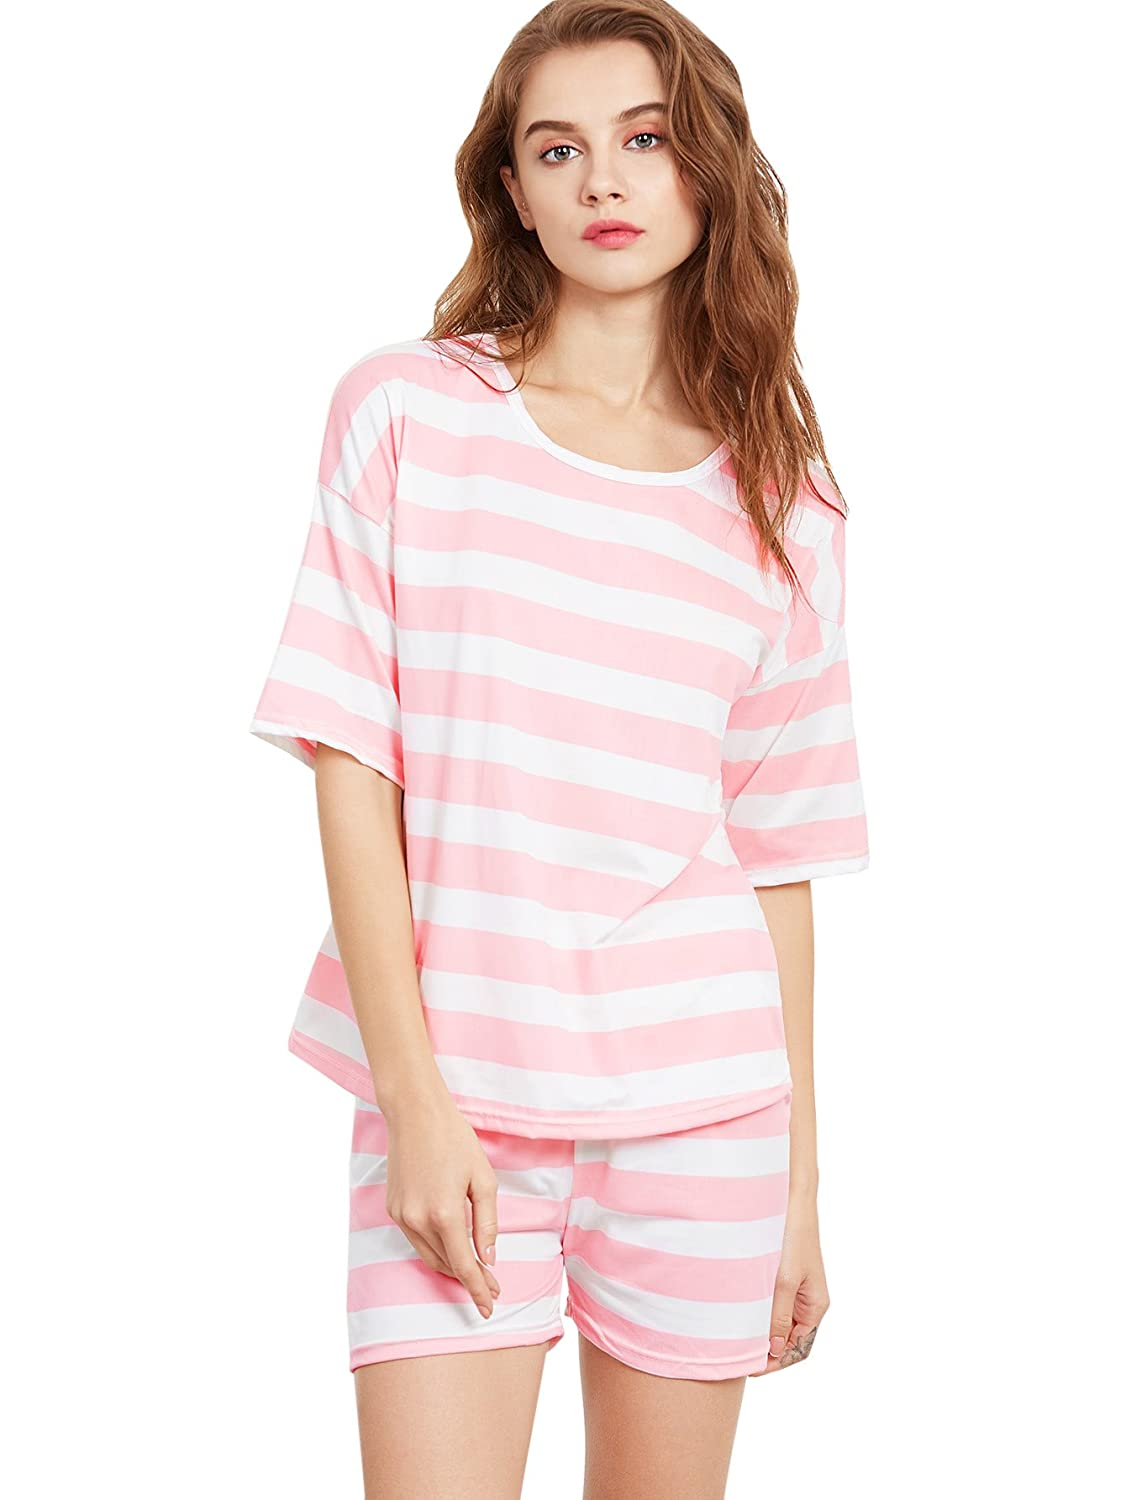 c742b111d2 Online Cheap wholesale SheIn Womens Cherry Print Top and Shorts 2-Piece Pajamas  Set Sets Suppliers